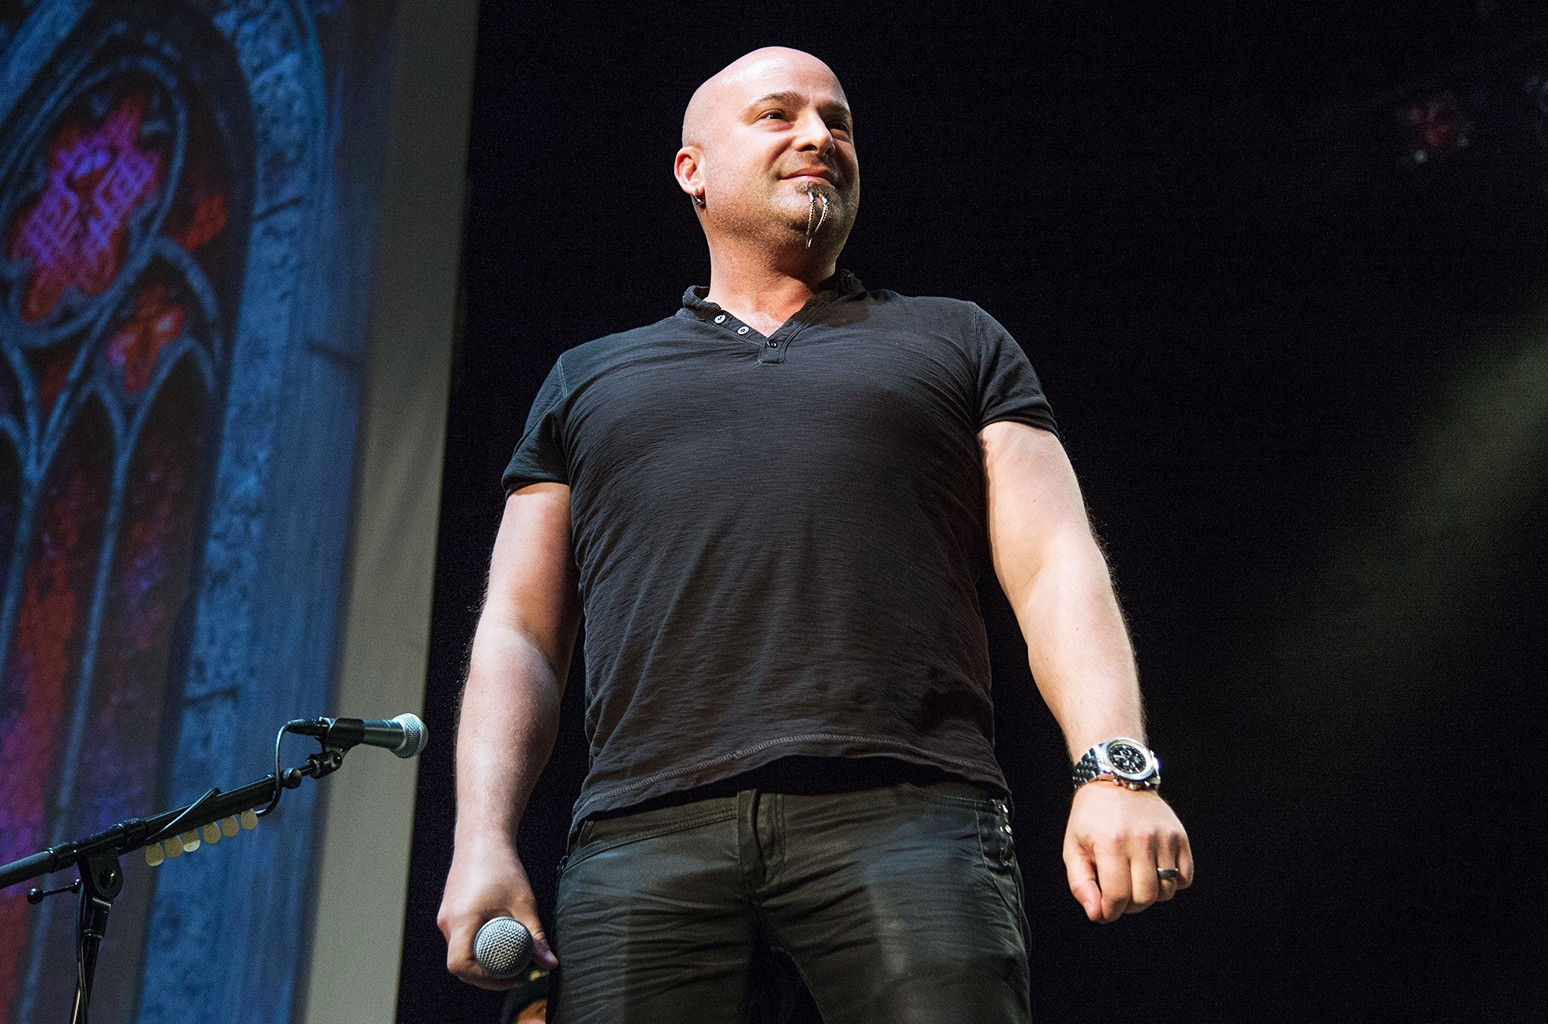 David Draiman at the Ozzfest and Knotfest in Los Angeles on May 12, 2016.